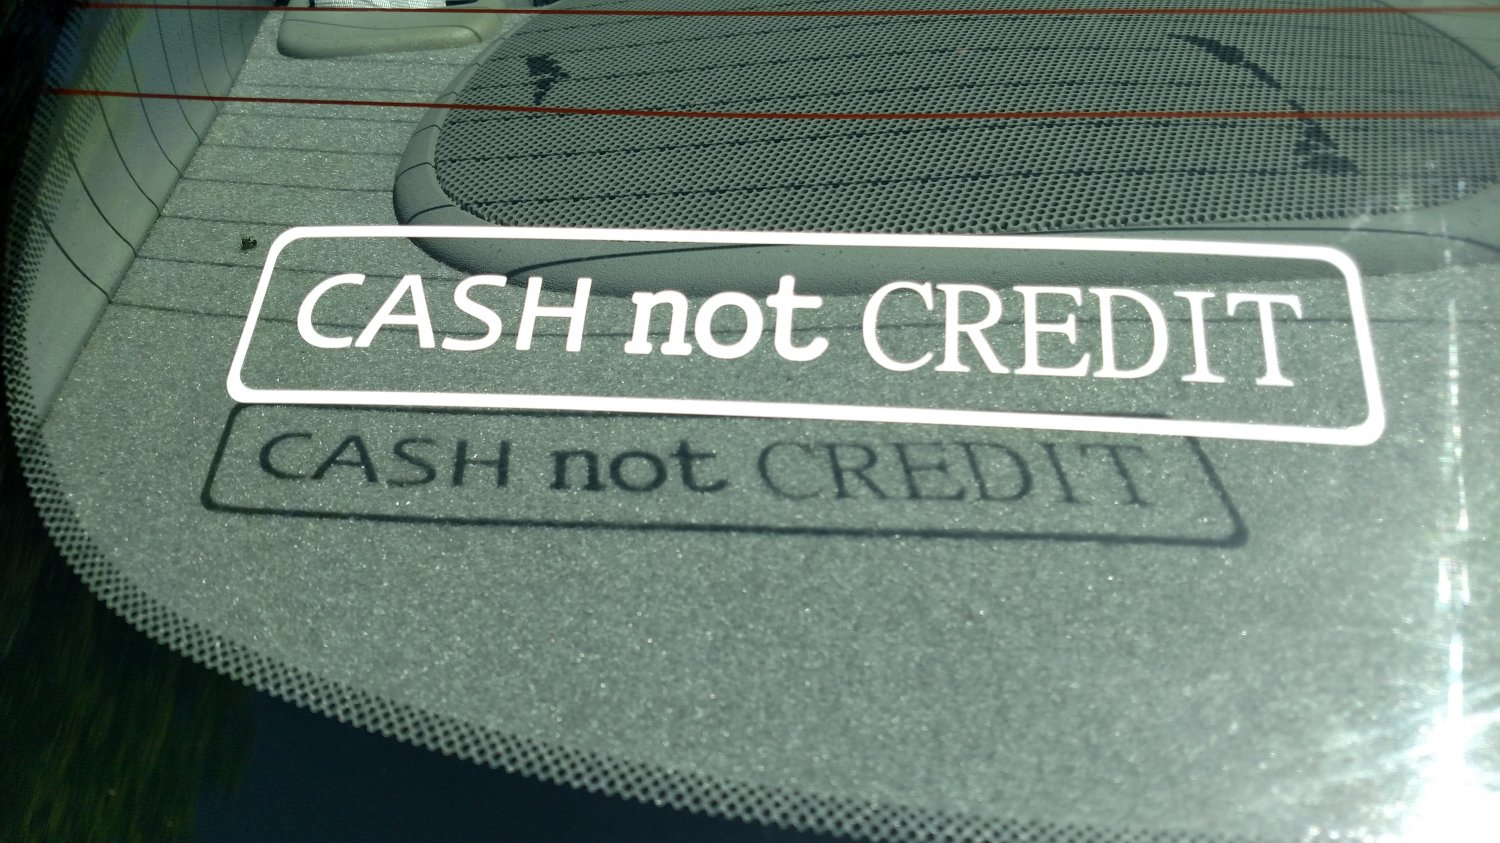 CASH not CREDIT Vinyl Car Window Bumper Sticker Decal Money Bought Tuner JDM Swag $